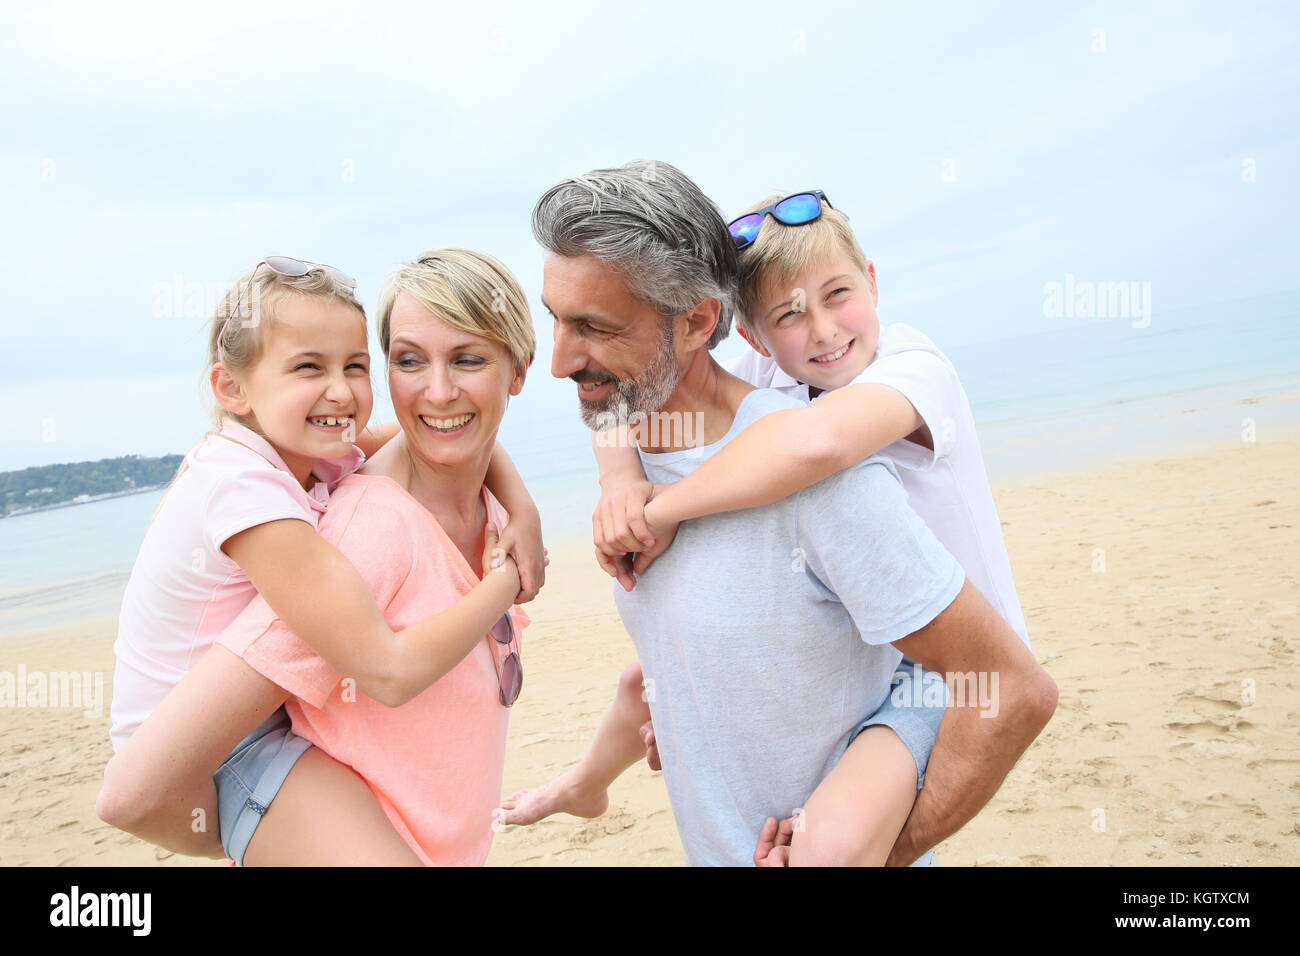 Parents giving piggyback ride to children at the beach - Stock Image